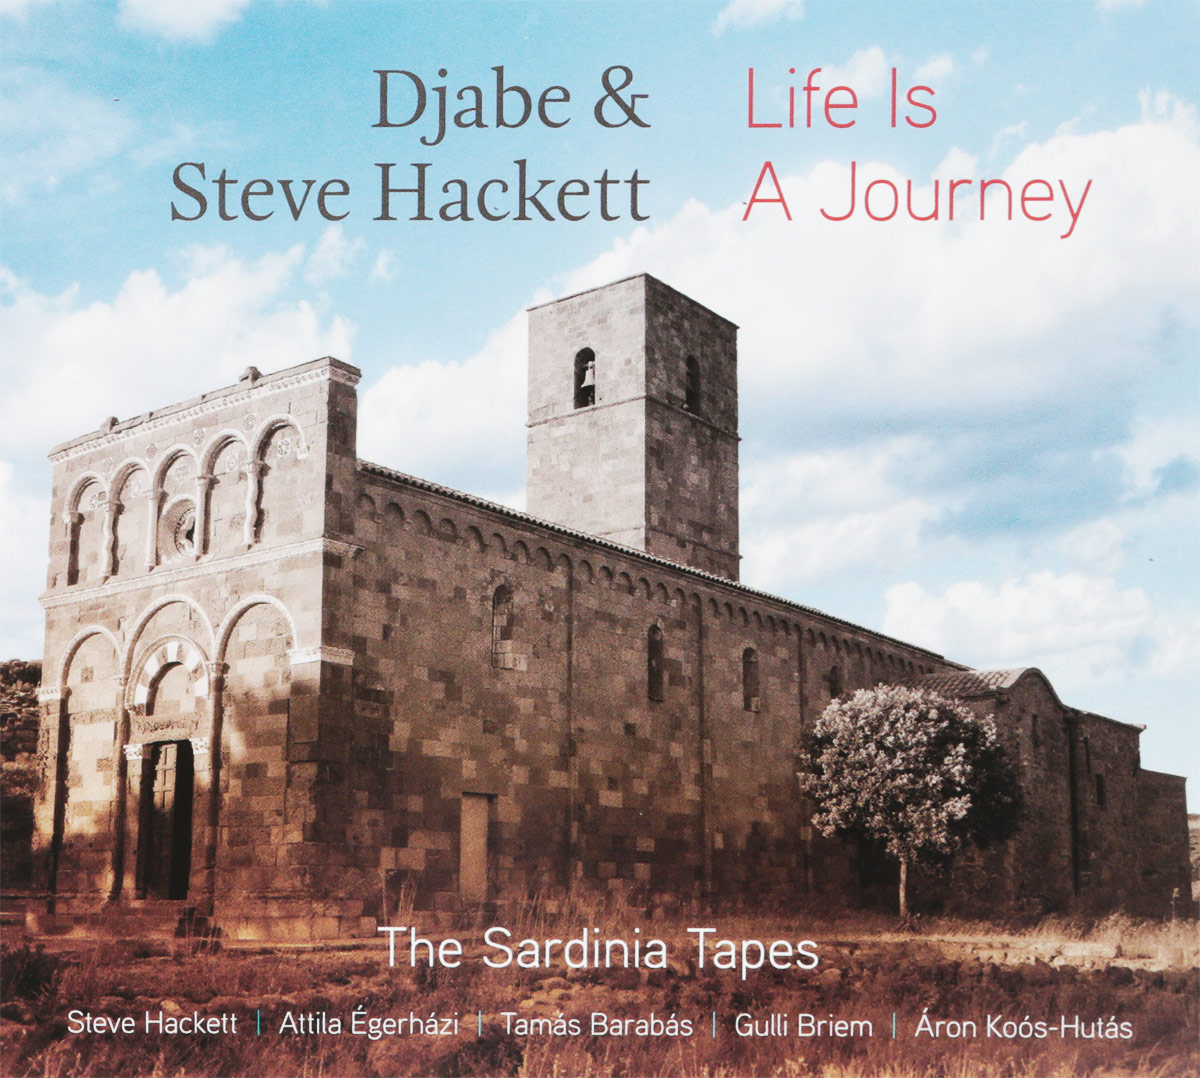 Djabe & Steve Hackett. Live Is A Journey - The Sardinia Tapes (CD + DVD) steve hackett steve hackett wolflight 2 lp cd